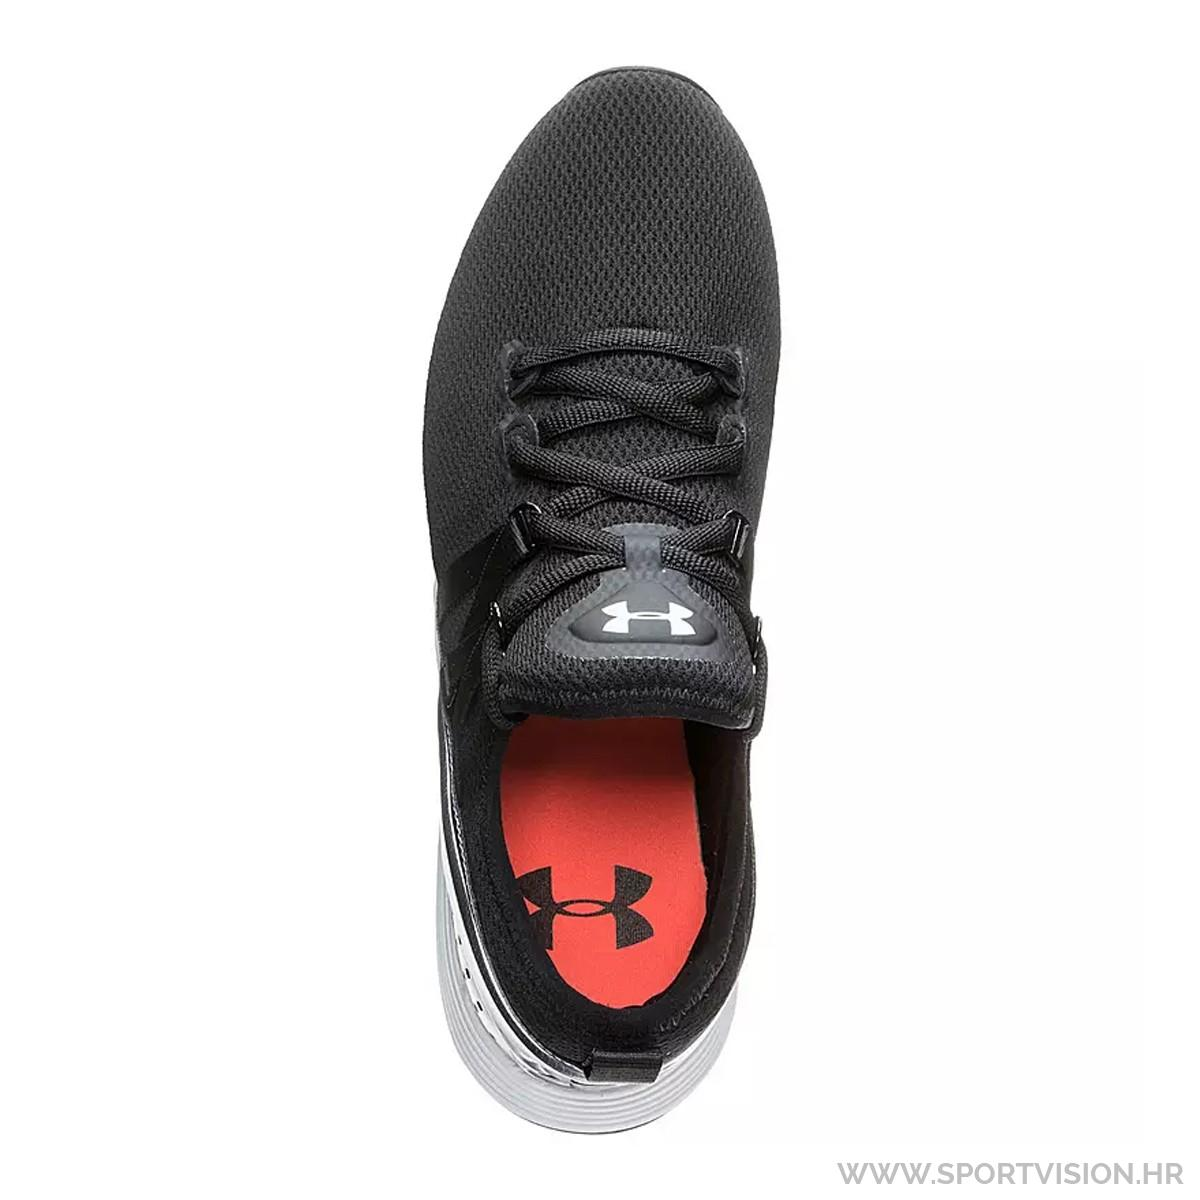 UNDER ARMOUR tenisice W BREATHE TRAINER